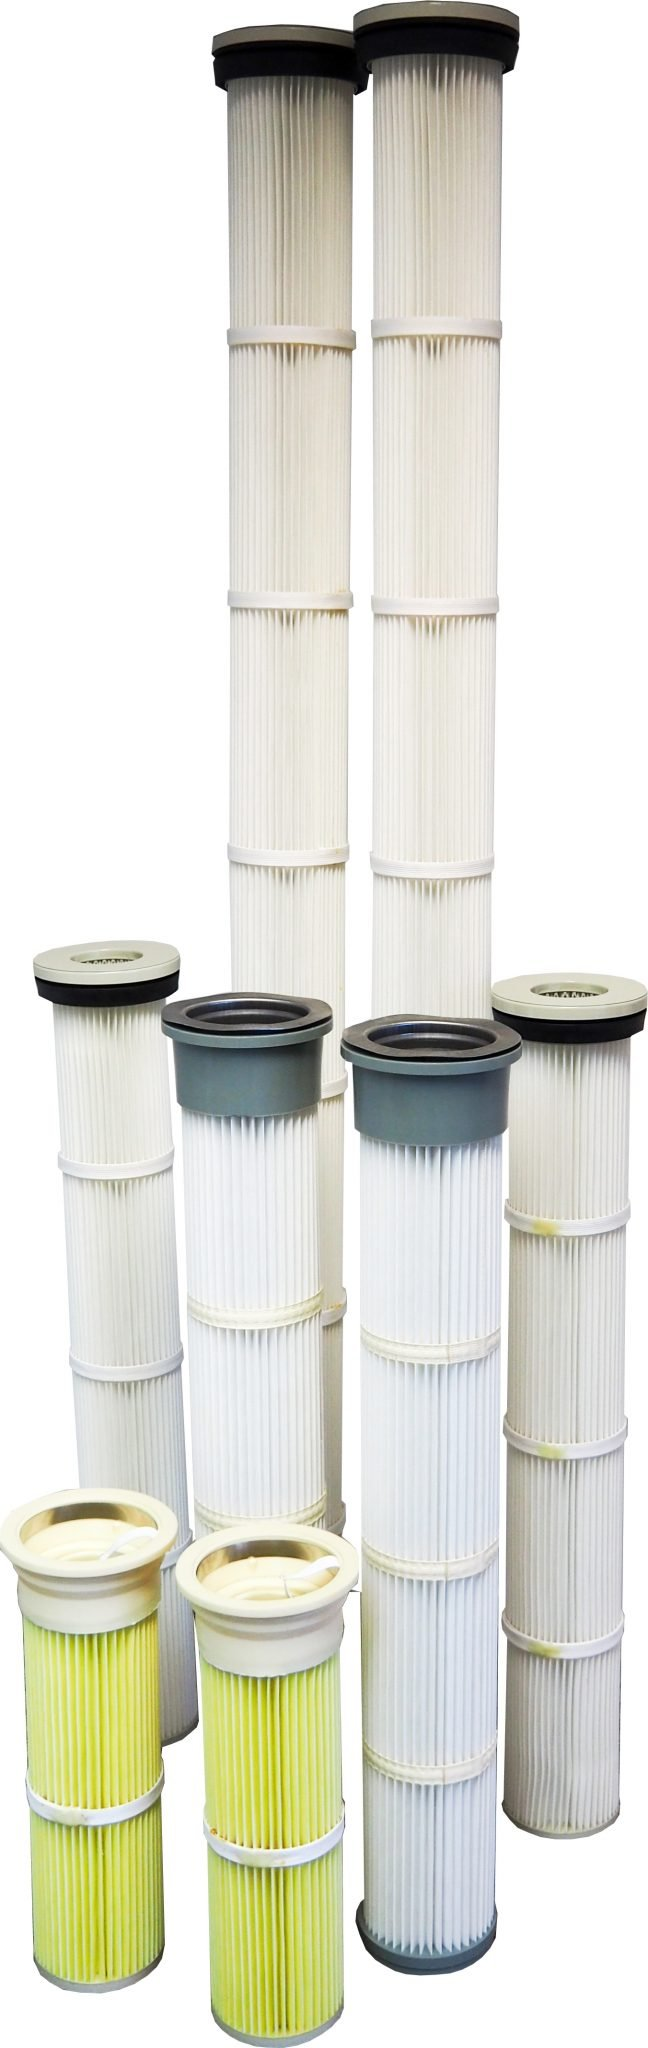 DUSTEX stocks a range of pleated filter cartridges for industrial dust collectors, available for despatch throughout New Zealand.